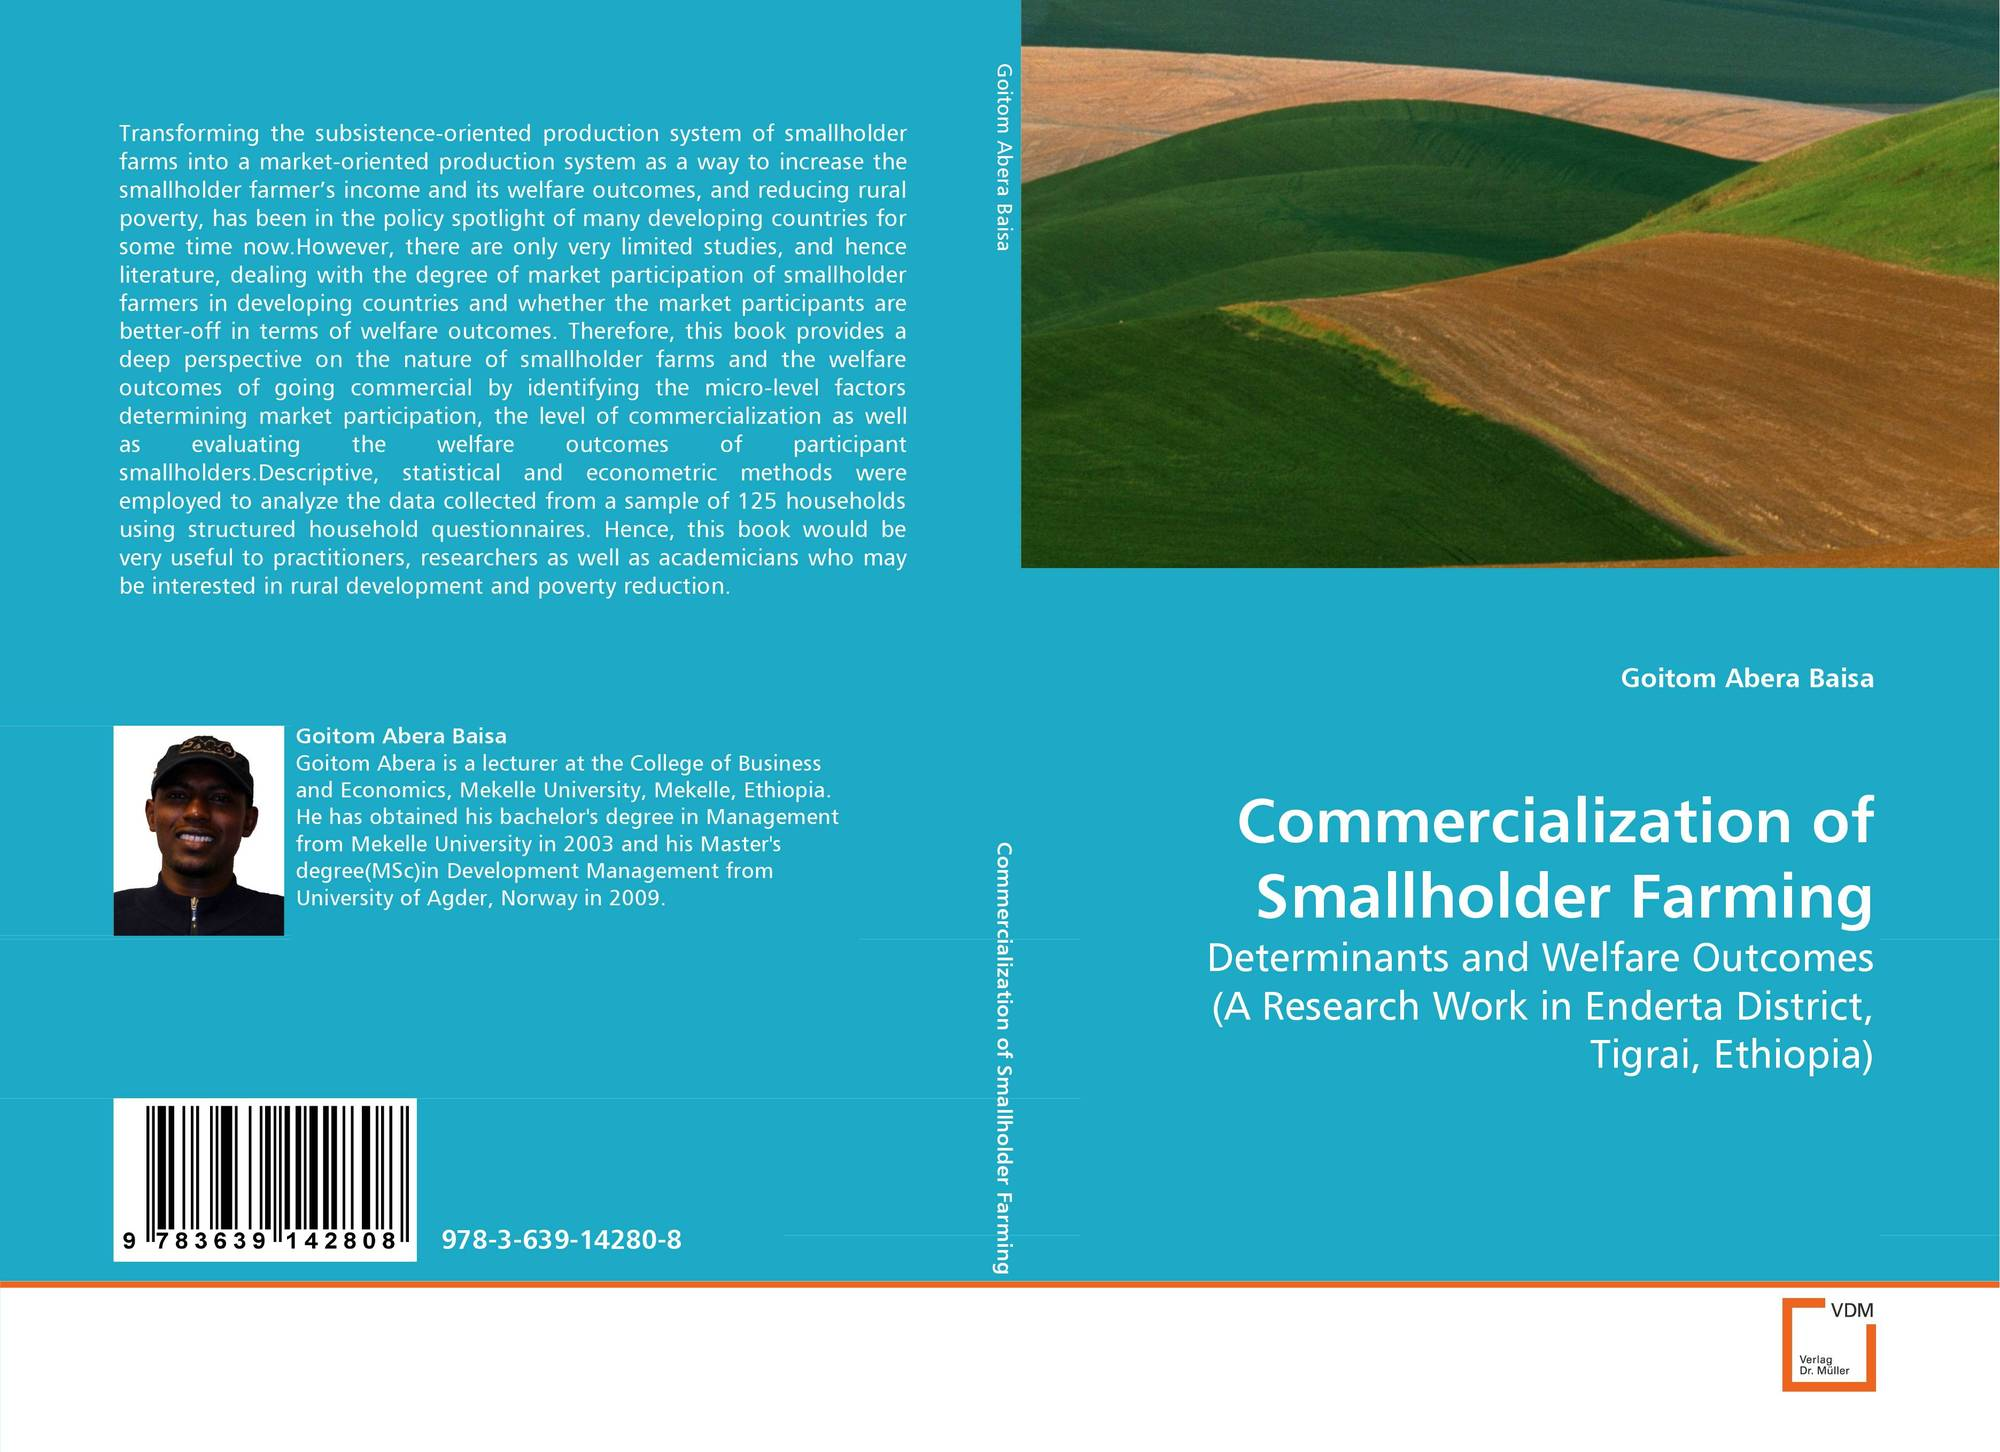 an analysis of the complexion of farming in changing radically The vibrant caused from setting sometimes radically different people inside an dark than your organic complexion and with a bit of work and analysis.